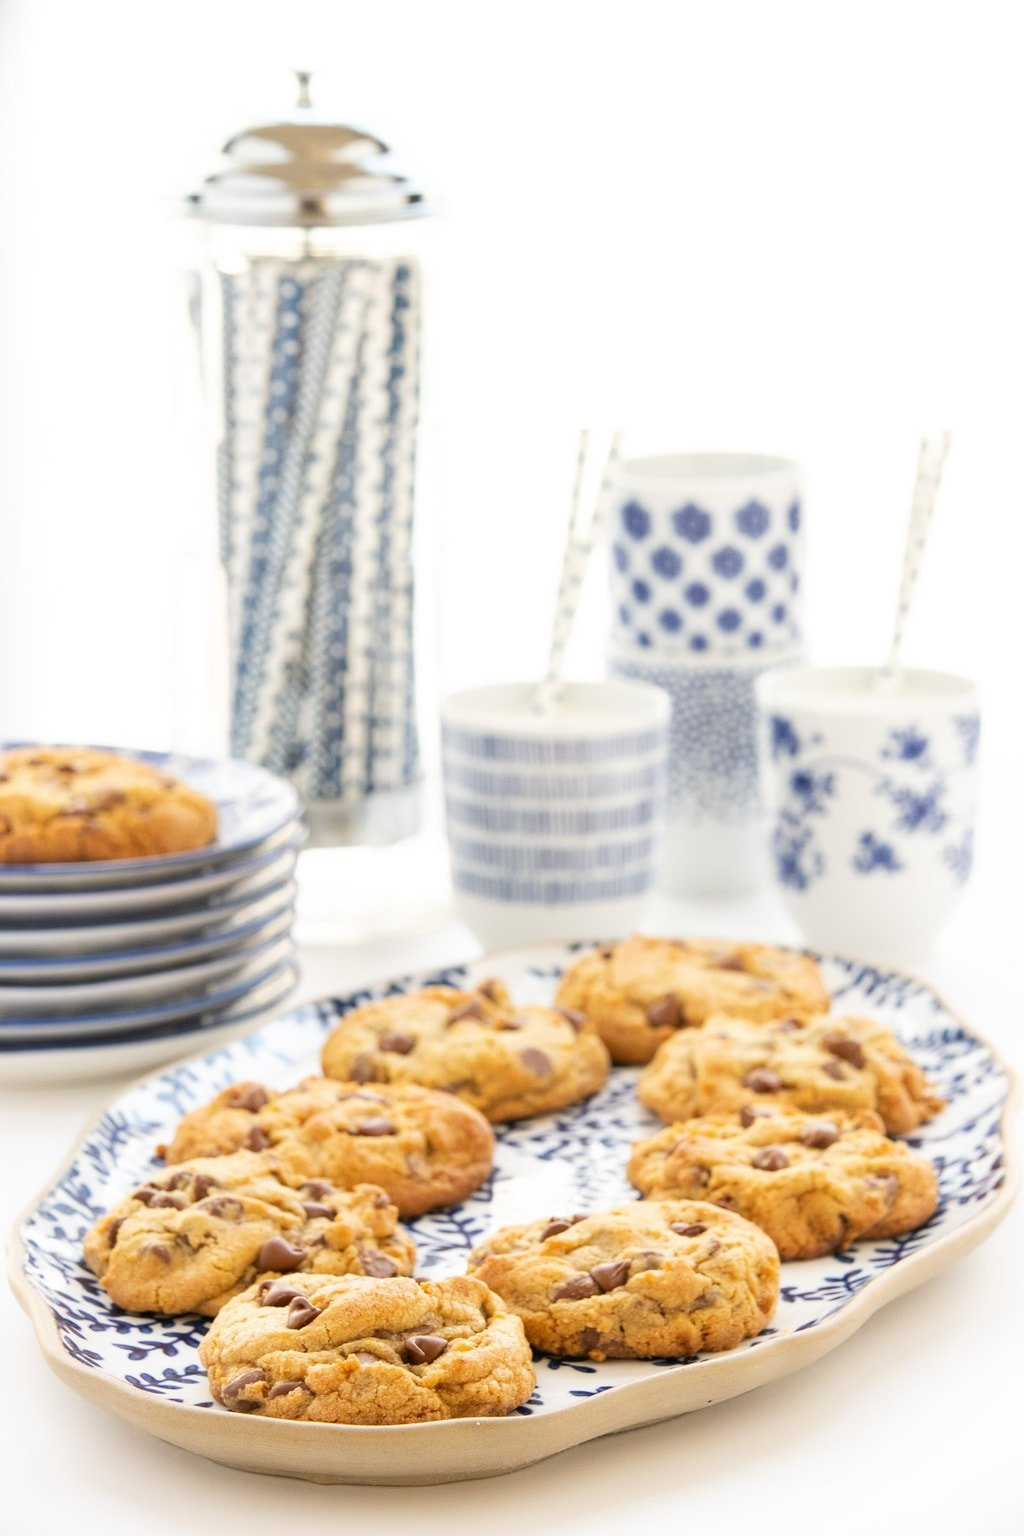 Vertical photo of Crumbl Chocolate Chip Cookies on a white and blue patterned platter with cups of milk an a straw dispenser in the background.